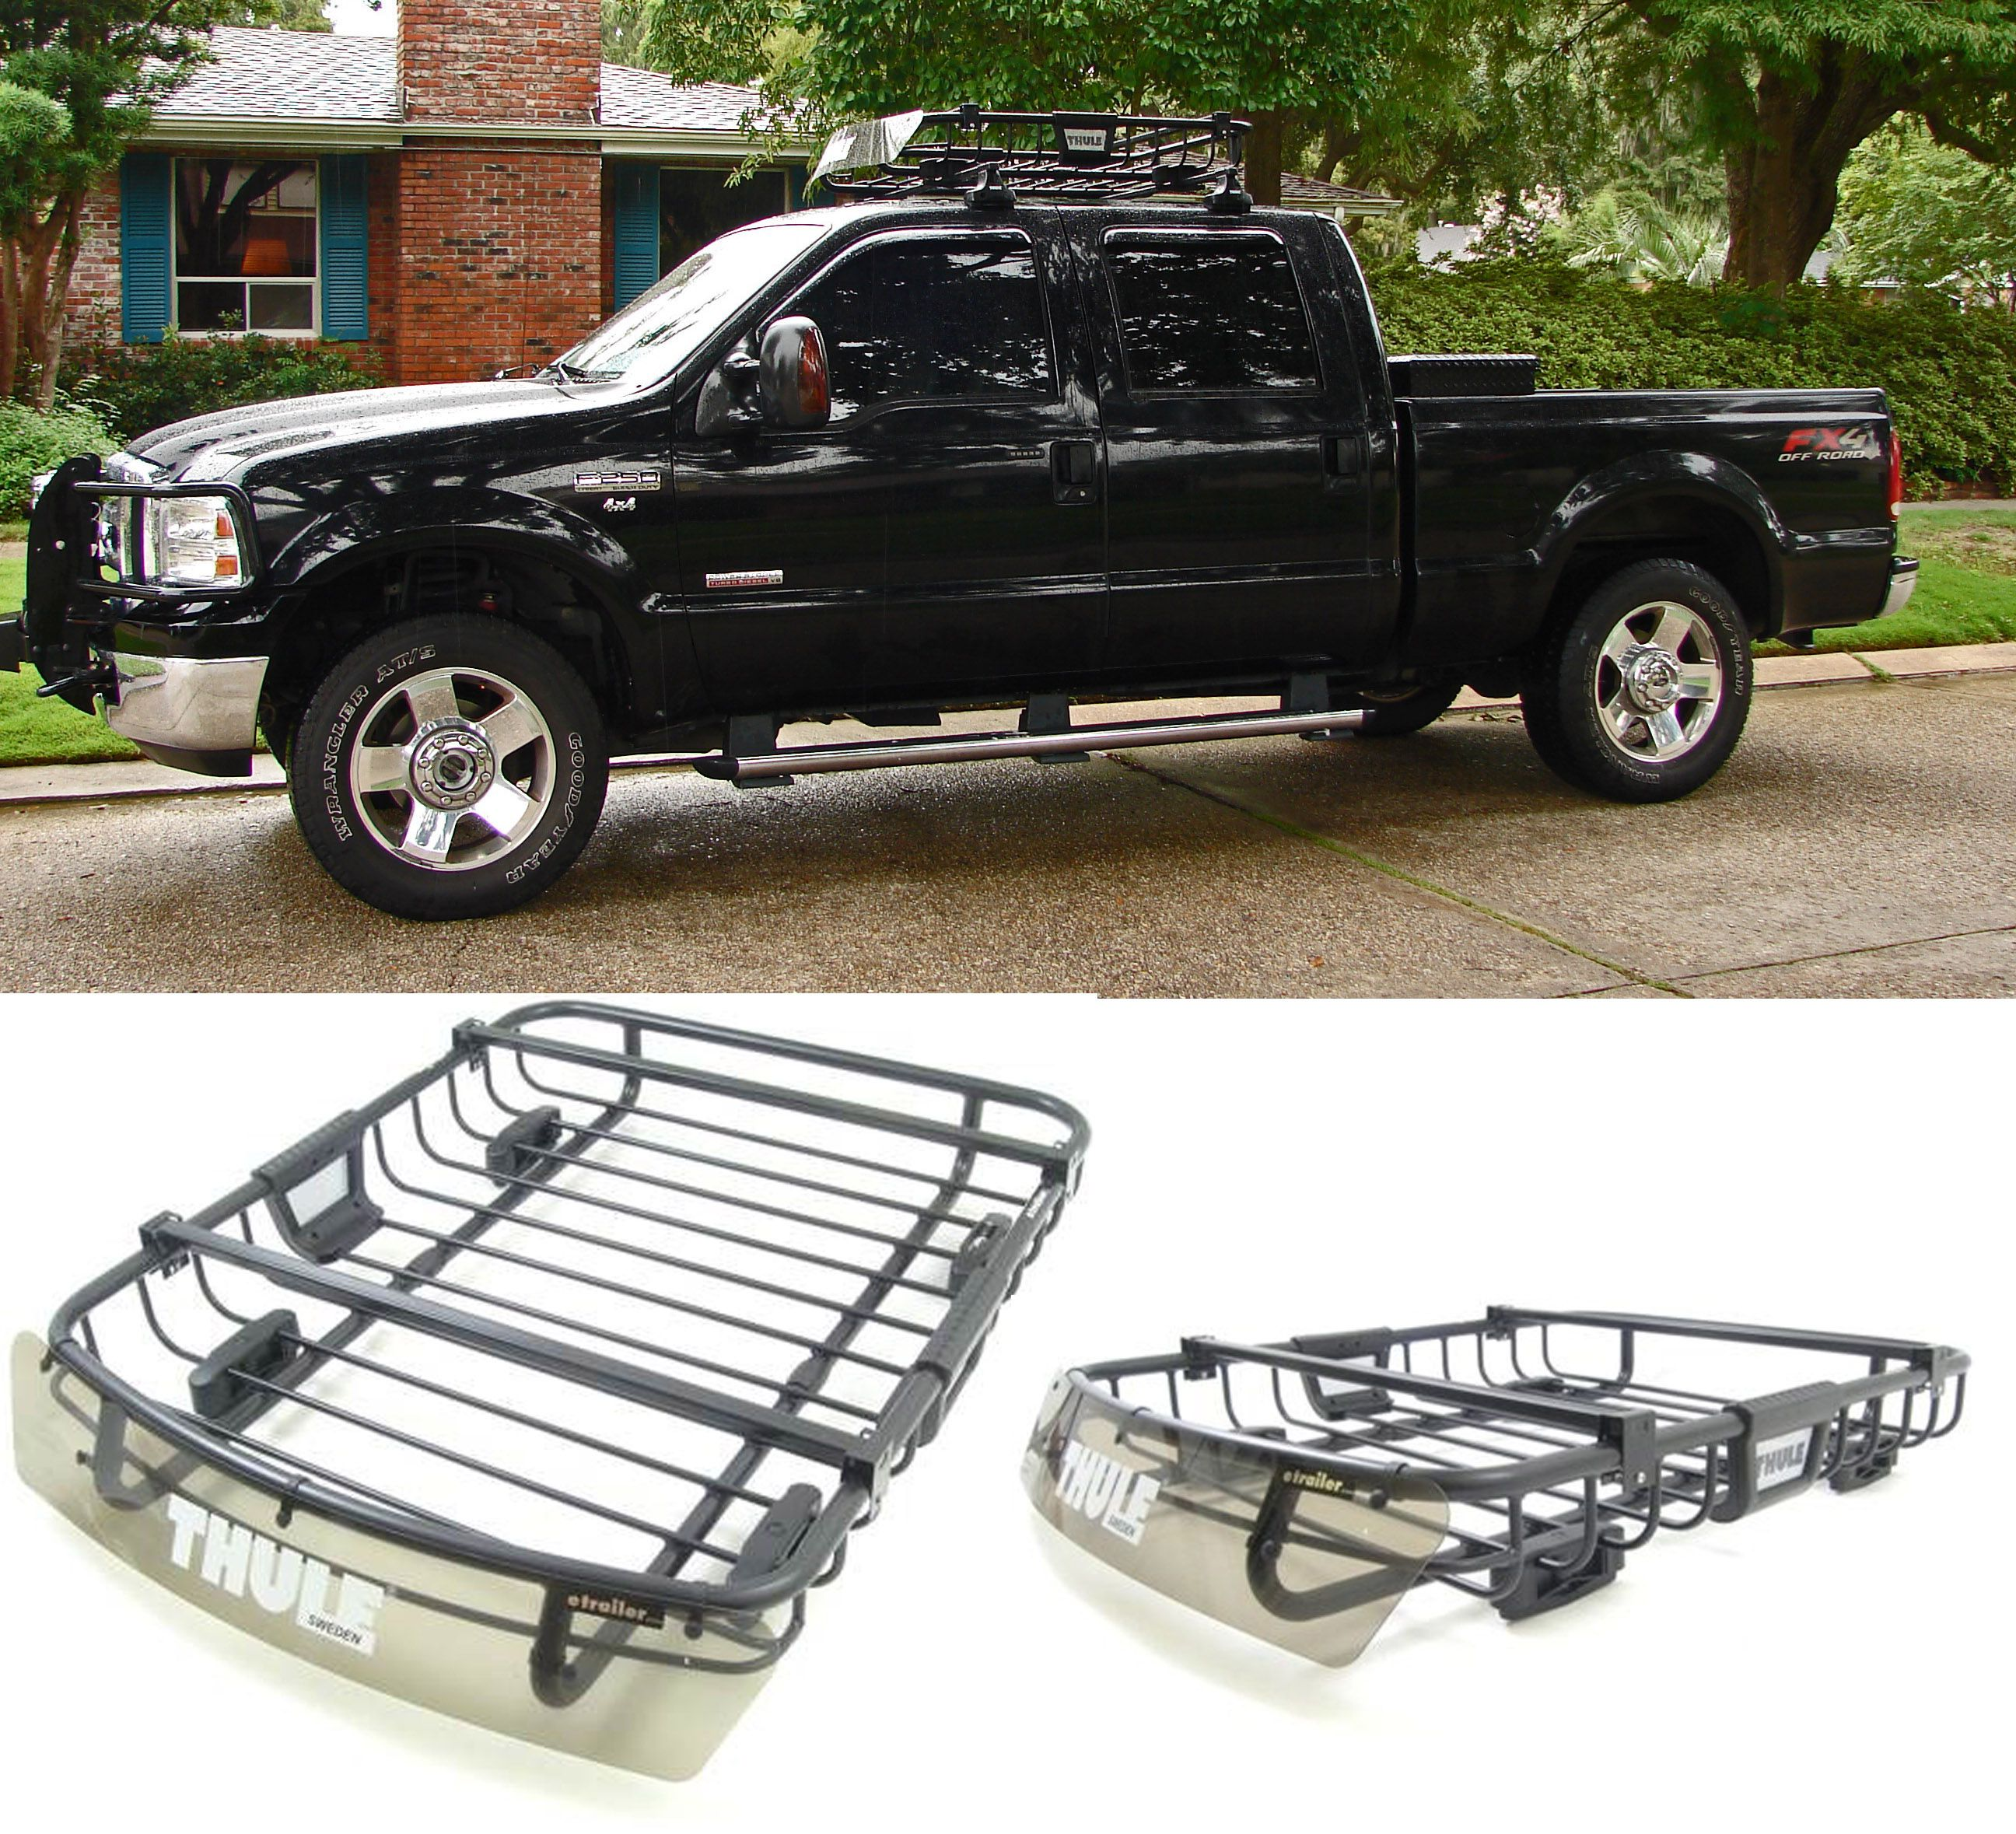 Thule M O A B Roof Top Cargo Carrier The Mother Of All Baskets If You Will Compatible With The Ford F 250 Carry Ex Cargo Carrier Cargo Carriers Roof Rack